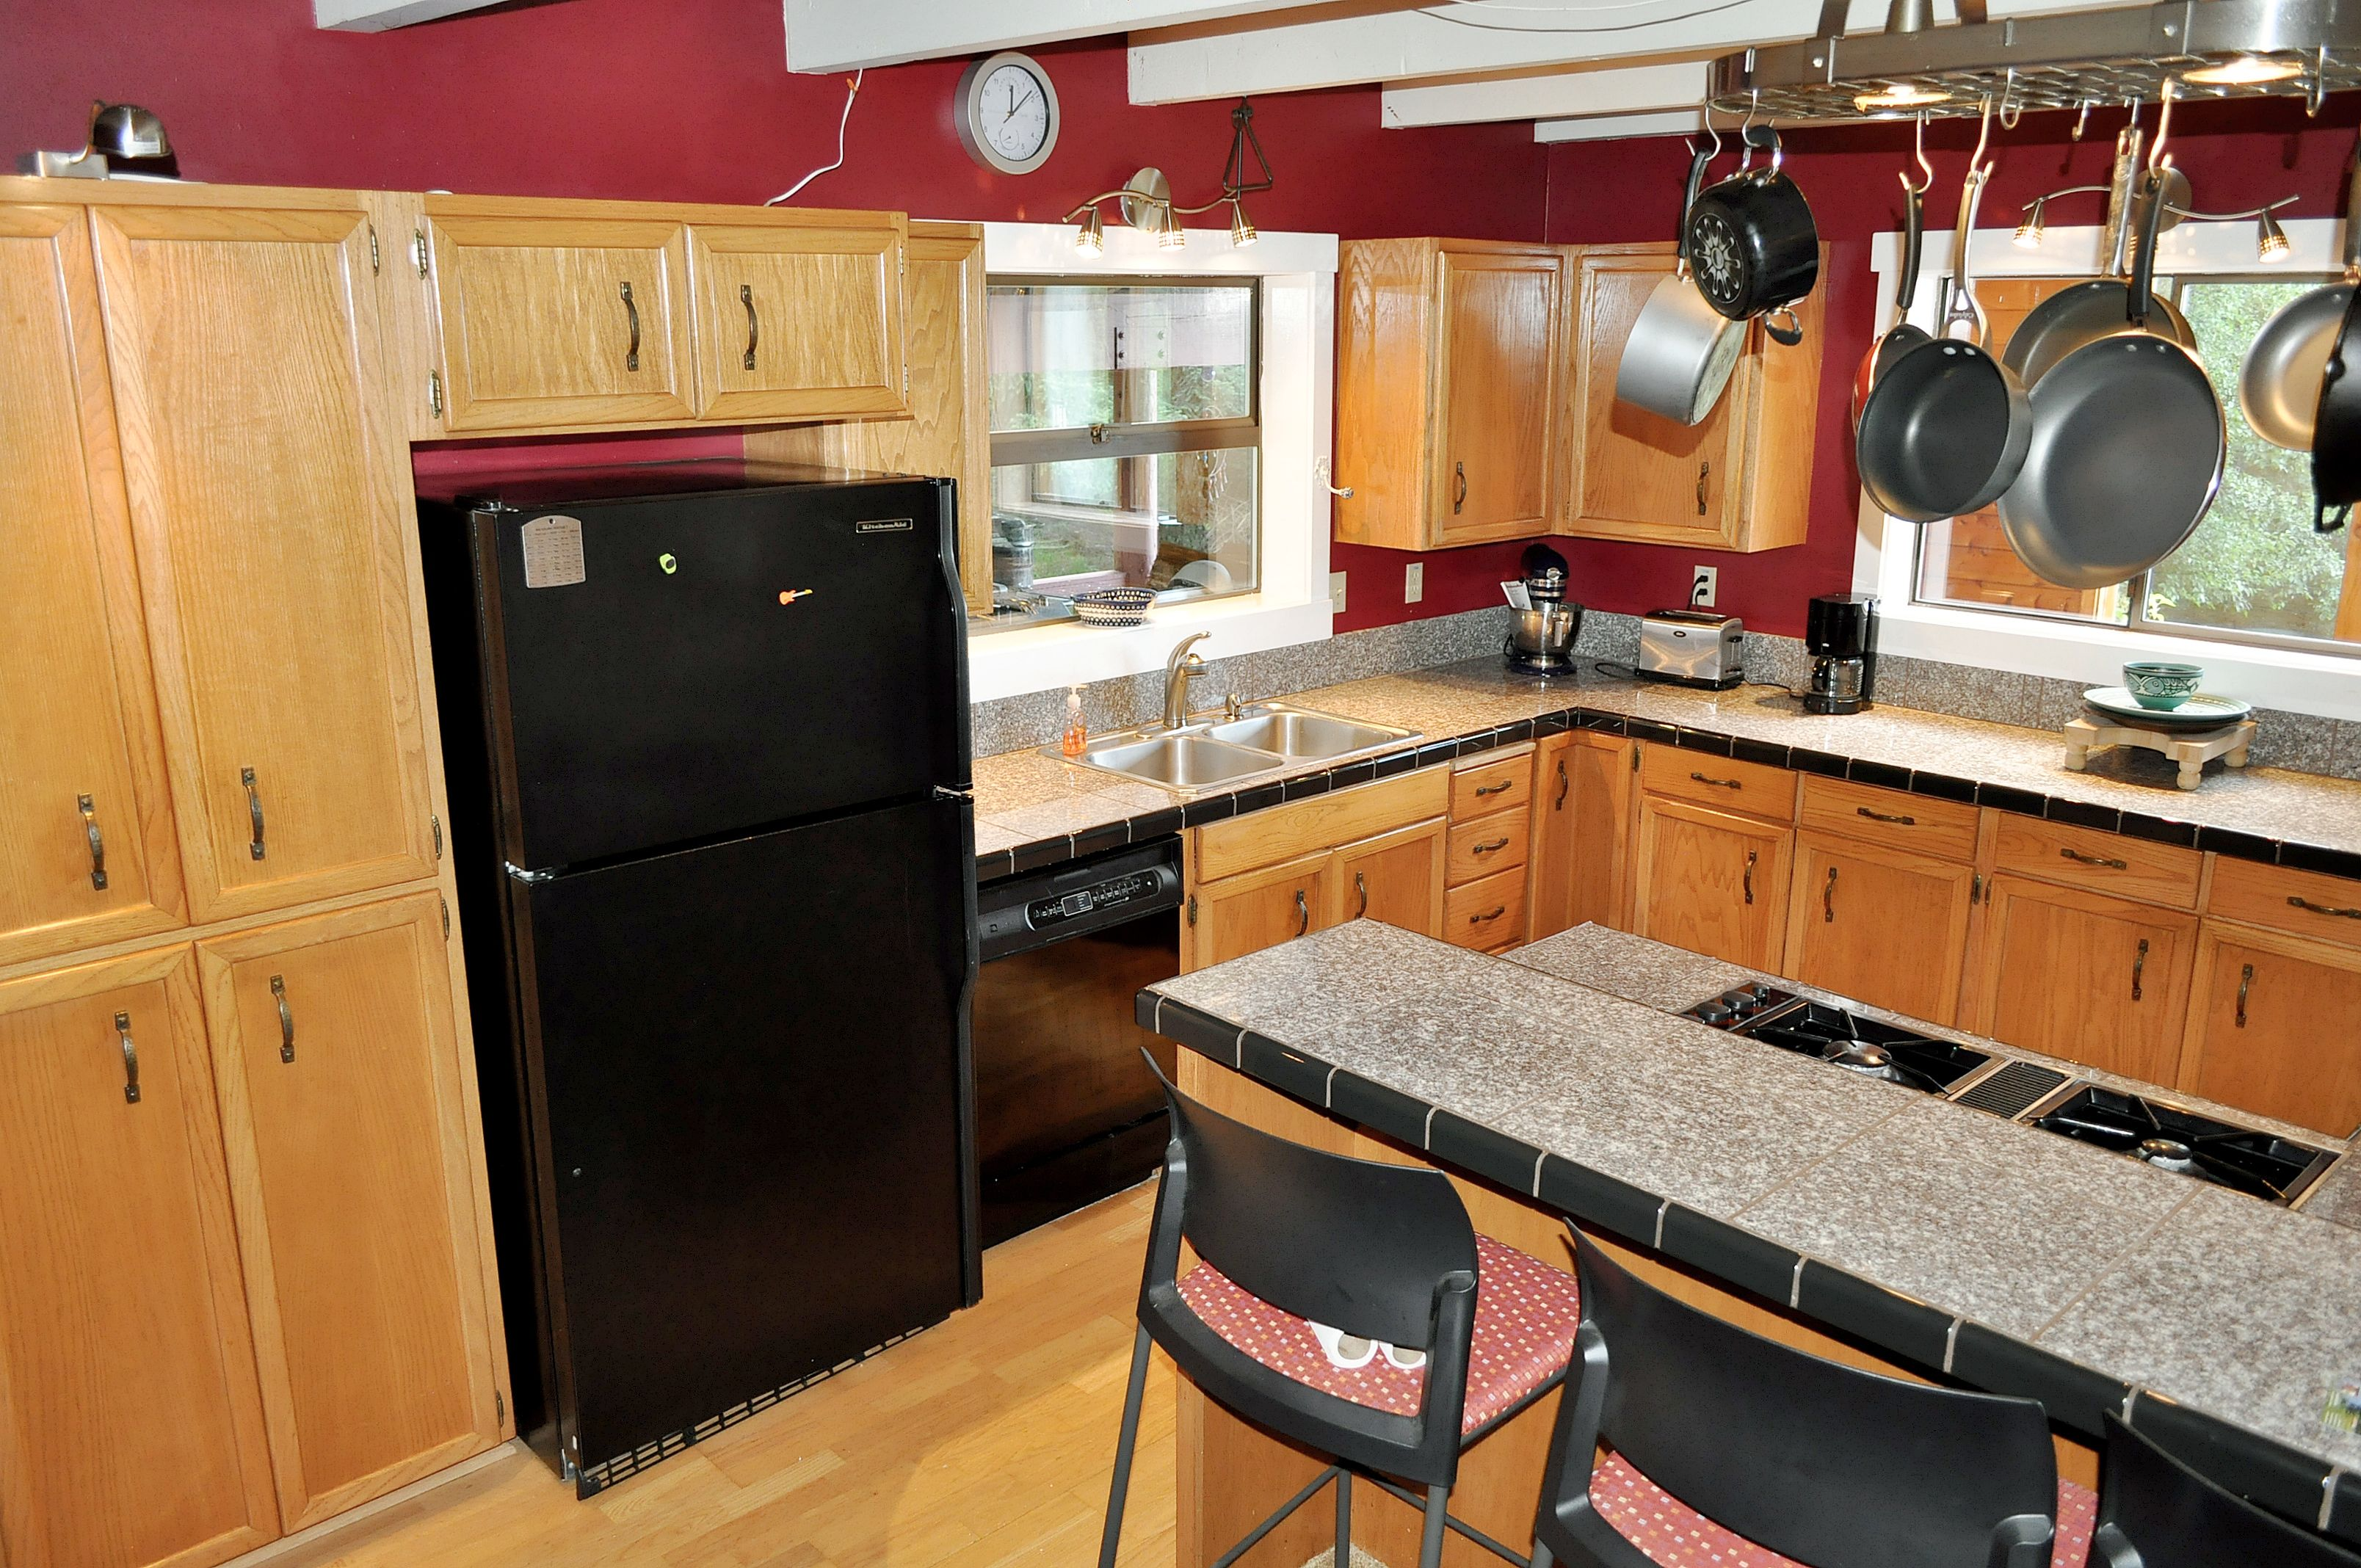 169 Olga Cemetery Rd Orcas Island Wa 98279 3 Bed 3 Bath Cute Kitchen Office With A View Kitchen